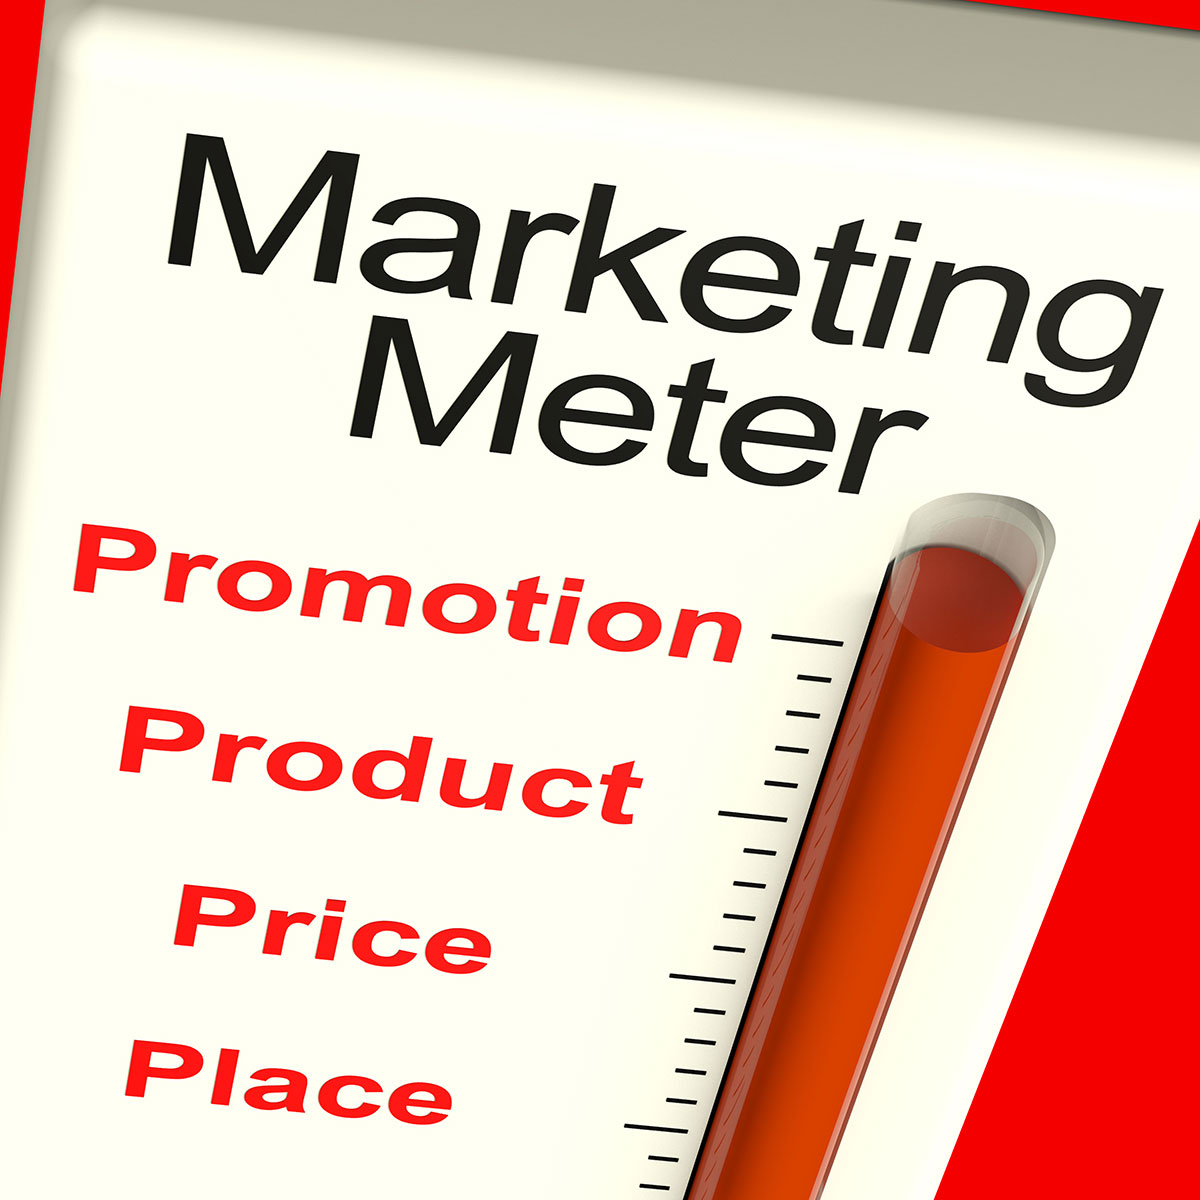 More Marketing Tips